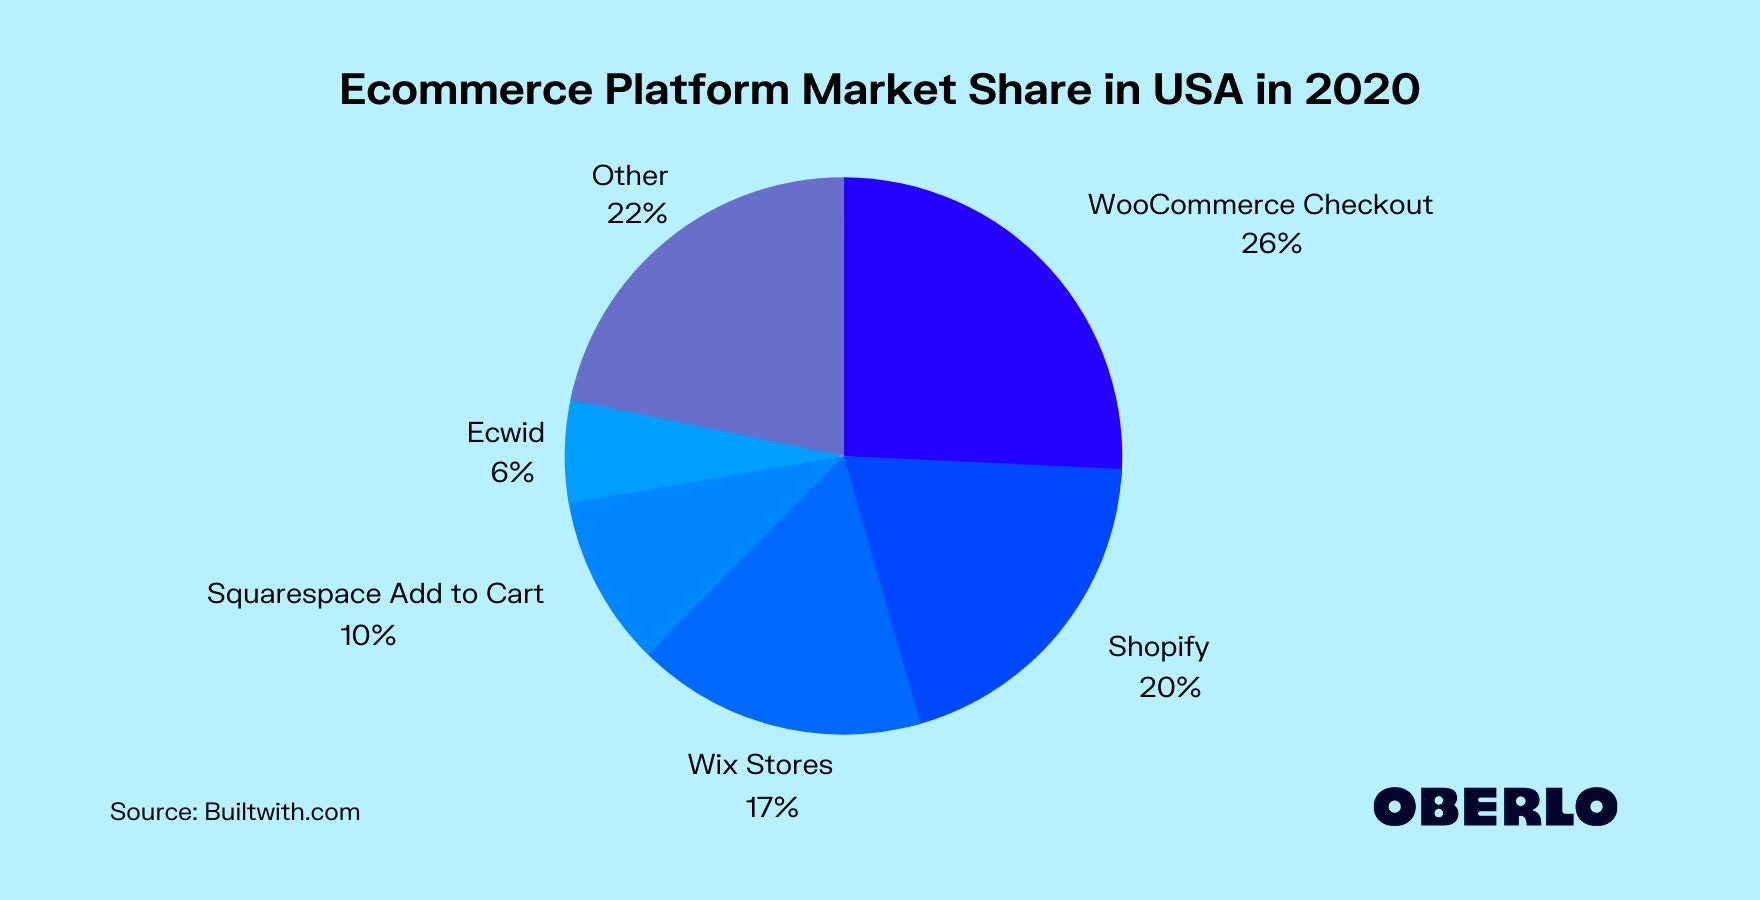 Ecommerce Platform Market Share in USA in 2020